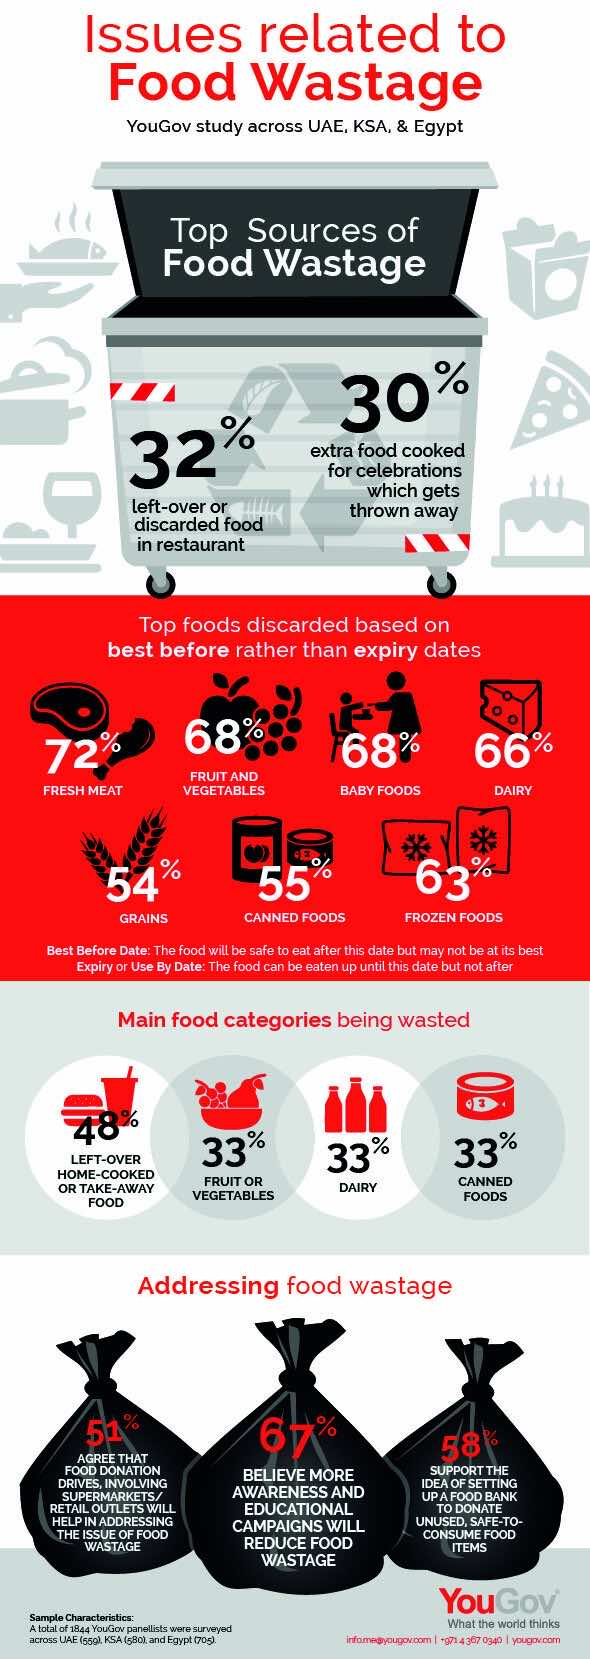 Infographic: Issues Related to Food Wastage in Egypt, UAE and Saudi Arabia by YouGov